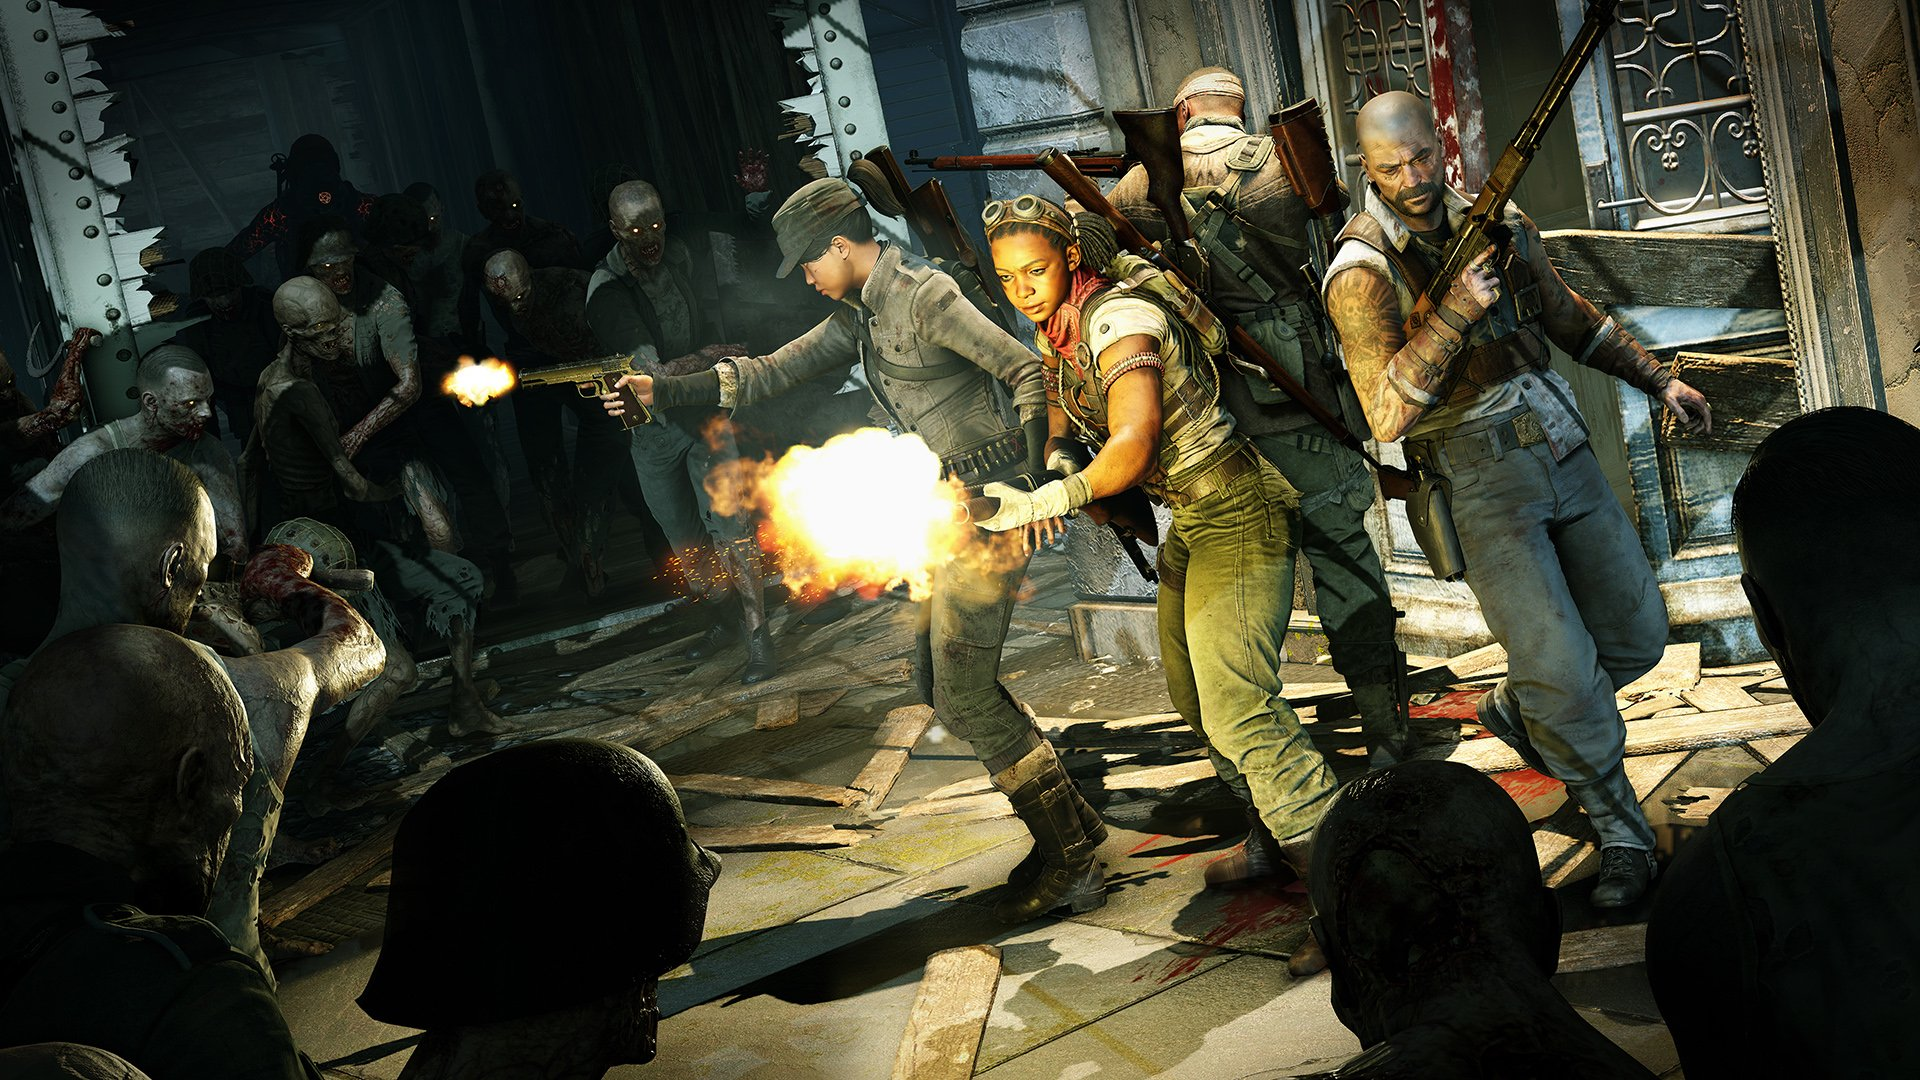 You have 4 characters to choose from in Zombie Army 4: Dead War including Boris, Shola, Jun, and Karl.